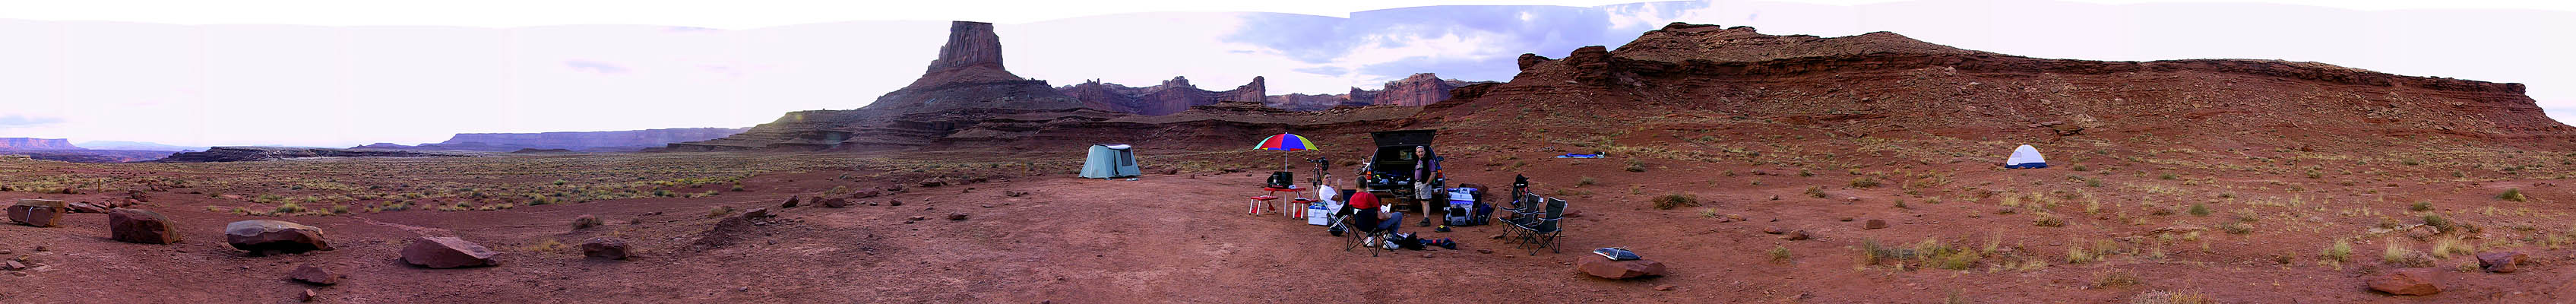 White Rim 2001: Day 1: Airport Camp A (Panoramic)